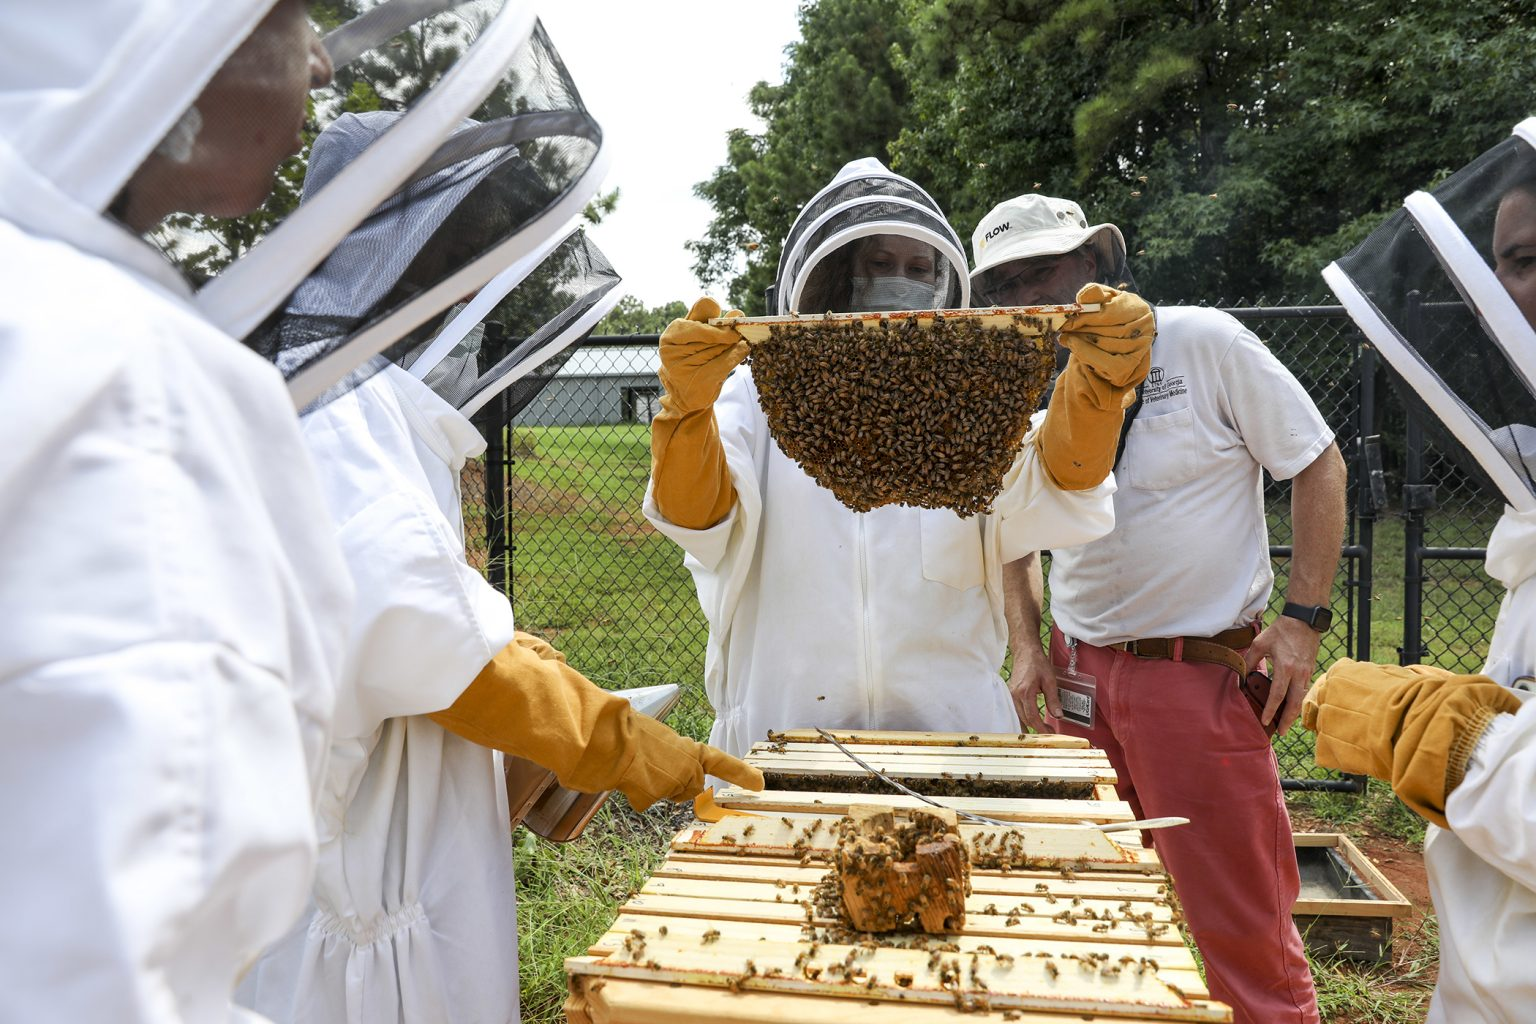 Professional and amateur beekeepers alike are invited to register for the 29th Young Harris College/University of Georgia Beekeeping Institute to be held virtually on May 13 and 14.